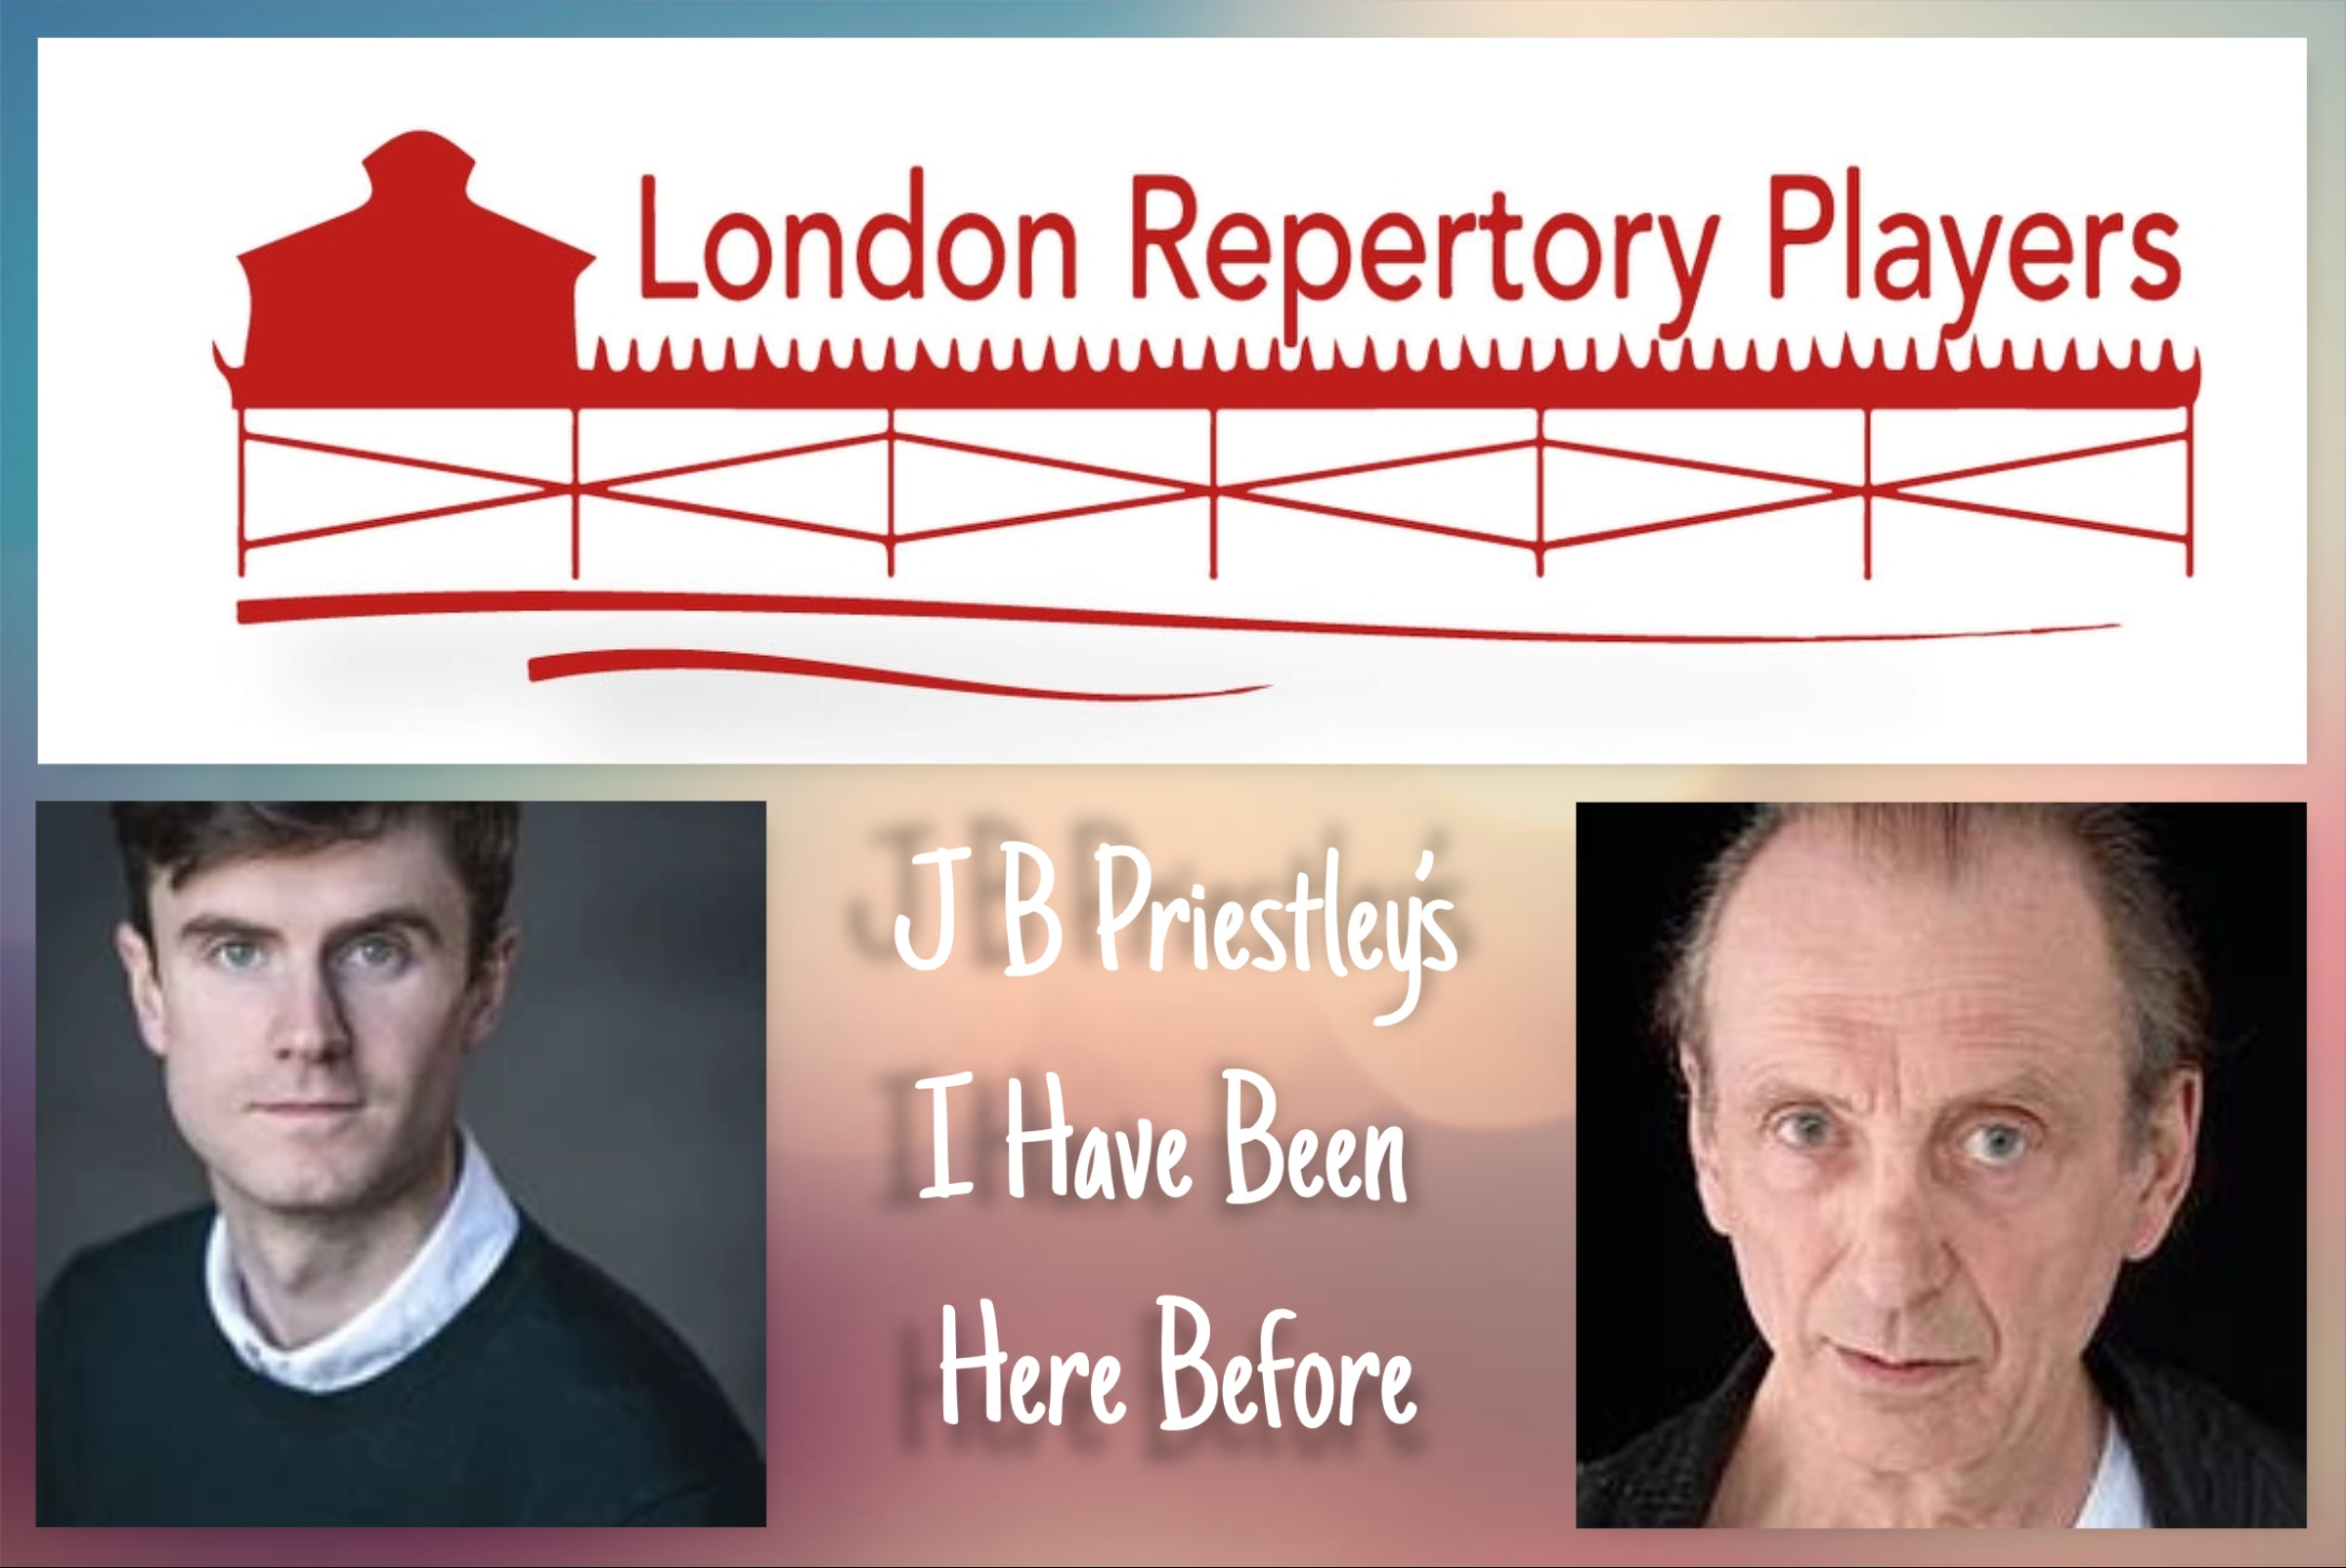 J B Priestley's I Have Been Here Before